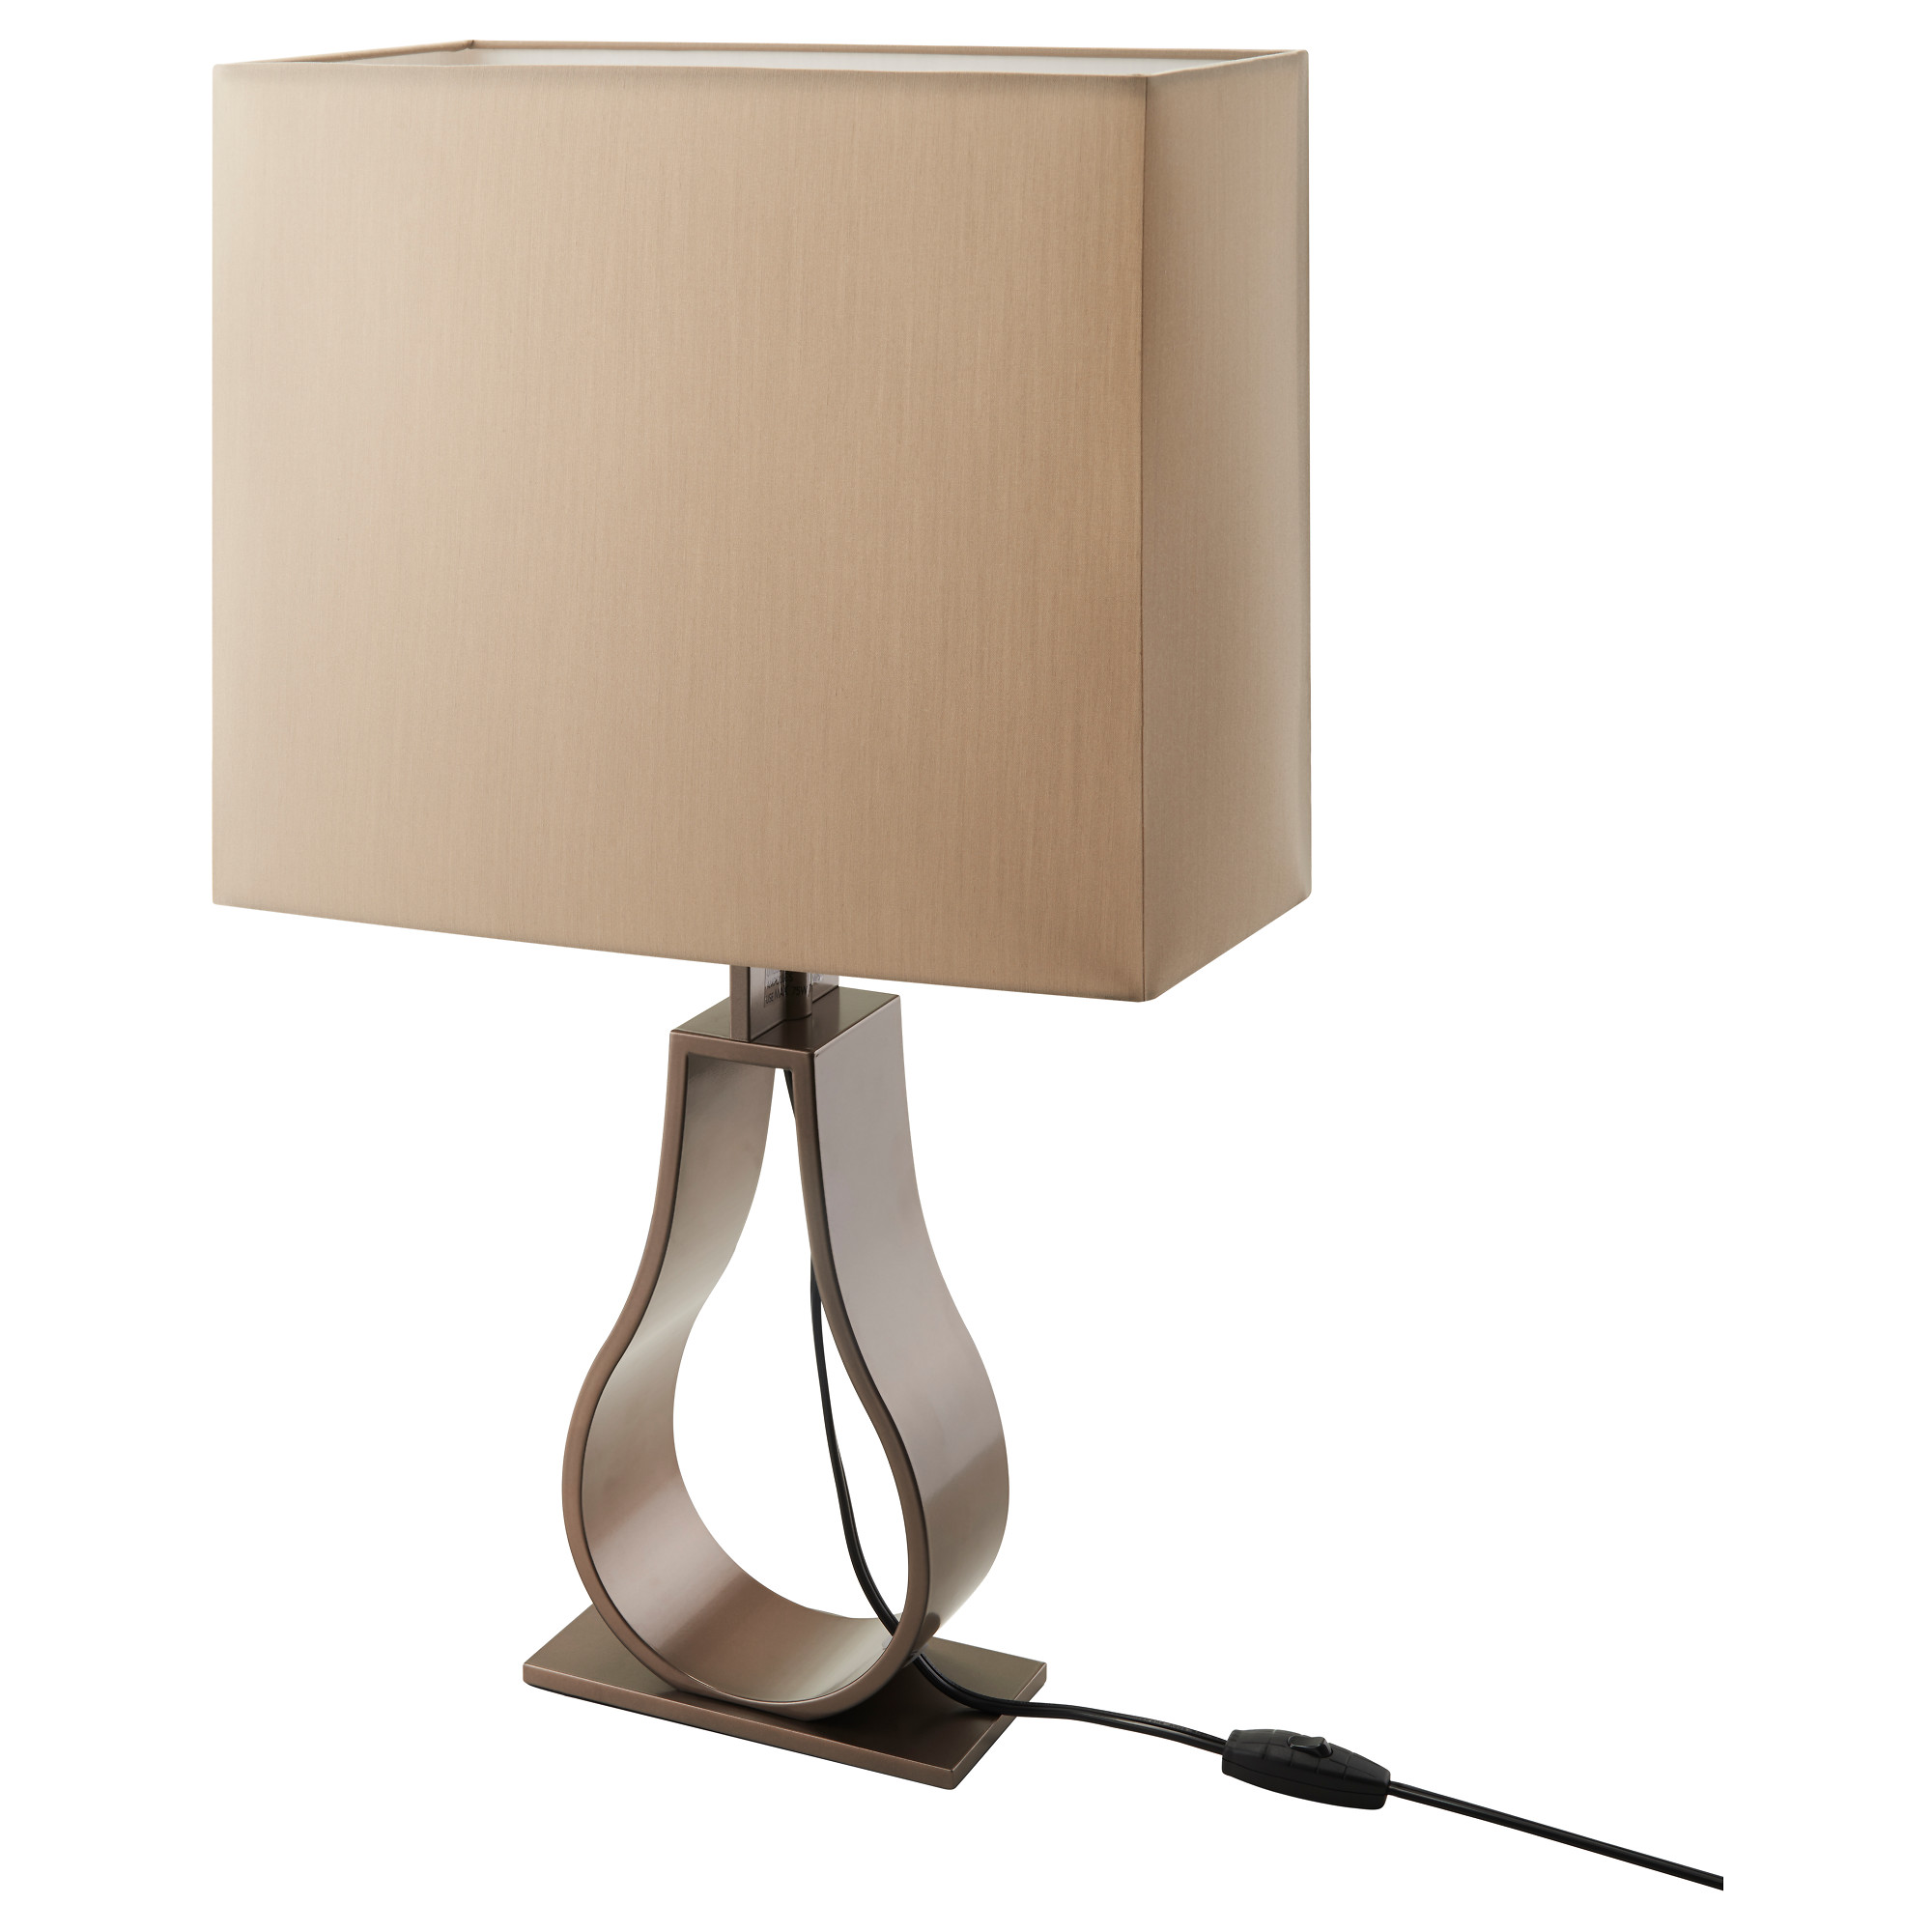 table lamps lighting. table lamps lighting e